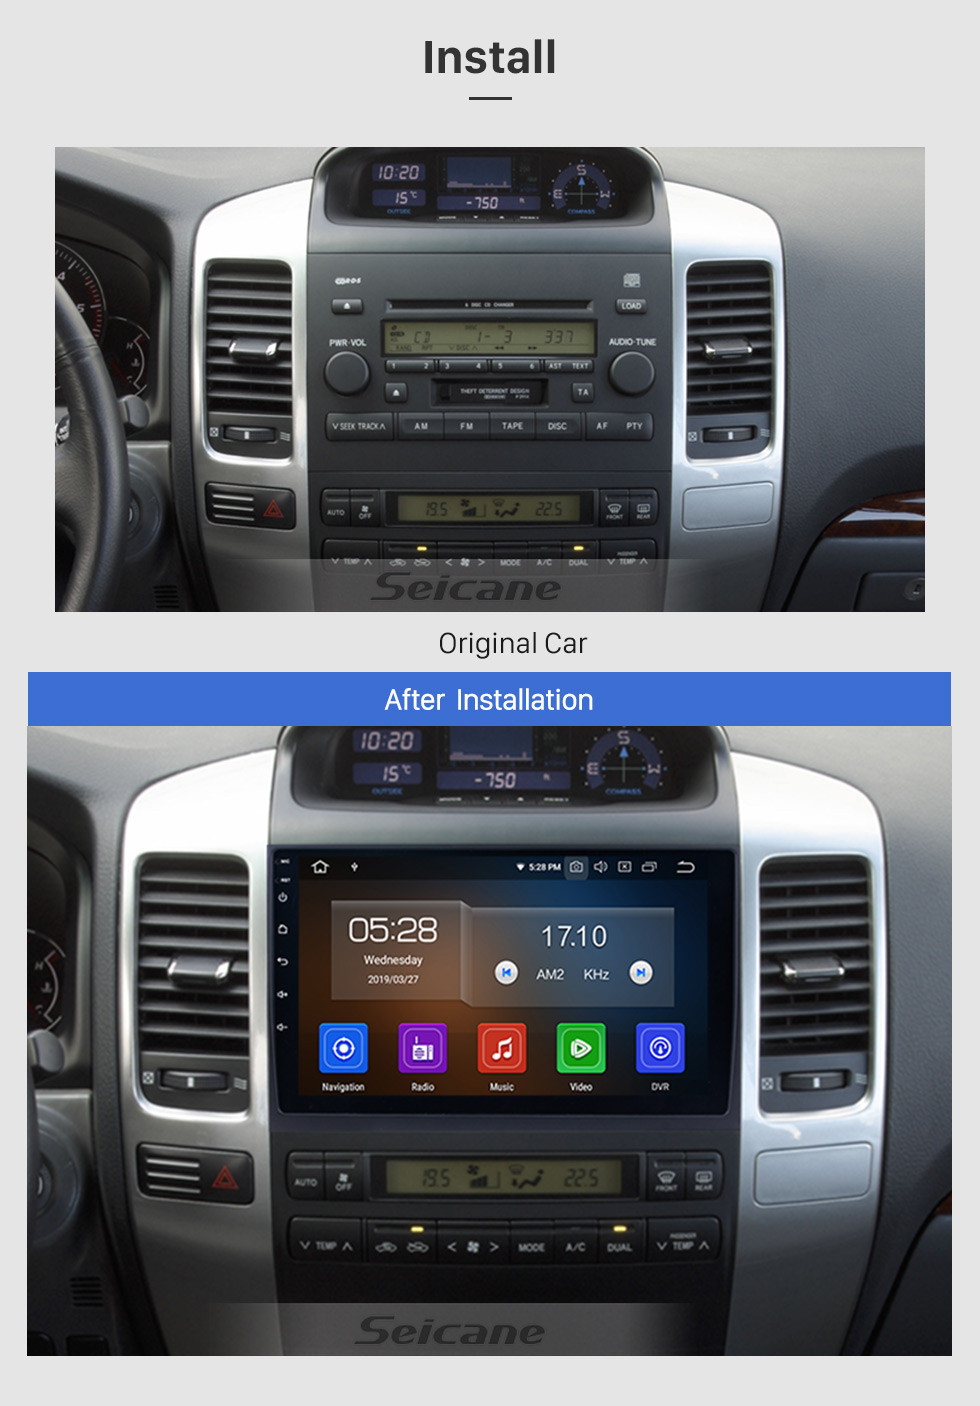 Seicane For 2002-2009 Toyota Prado Cruiser 120 Android 10.0 Autoradio DVD Navigation System with 3G WiFi Bluetooth Mirror Link OBD2 Rearview Camera HD 1024*600 Multi-touch Screen